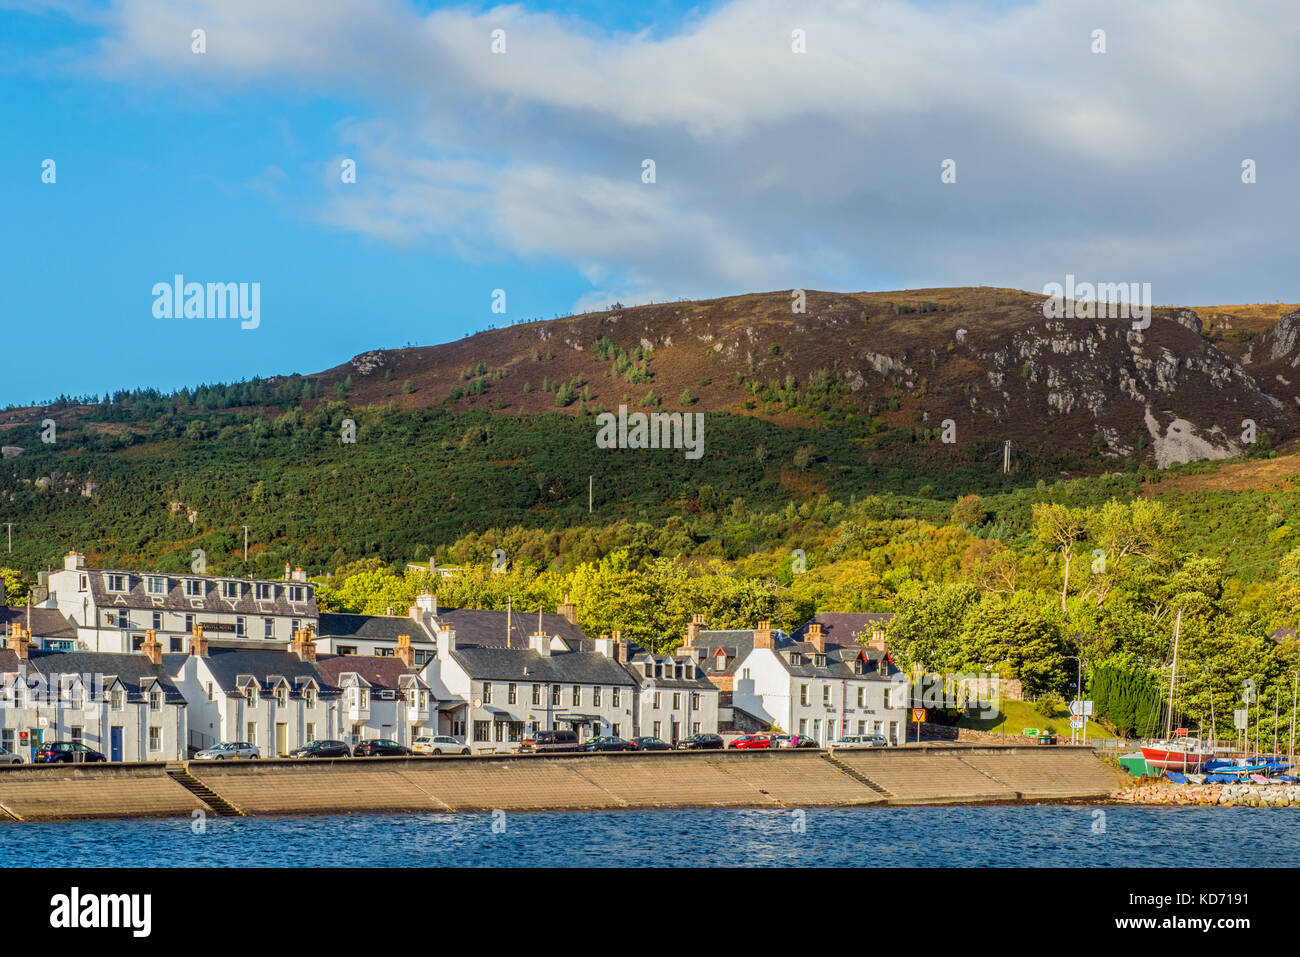 Ullapool Front on Loch Broom, Scottish Highlands - Stock Image